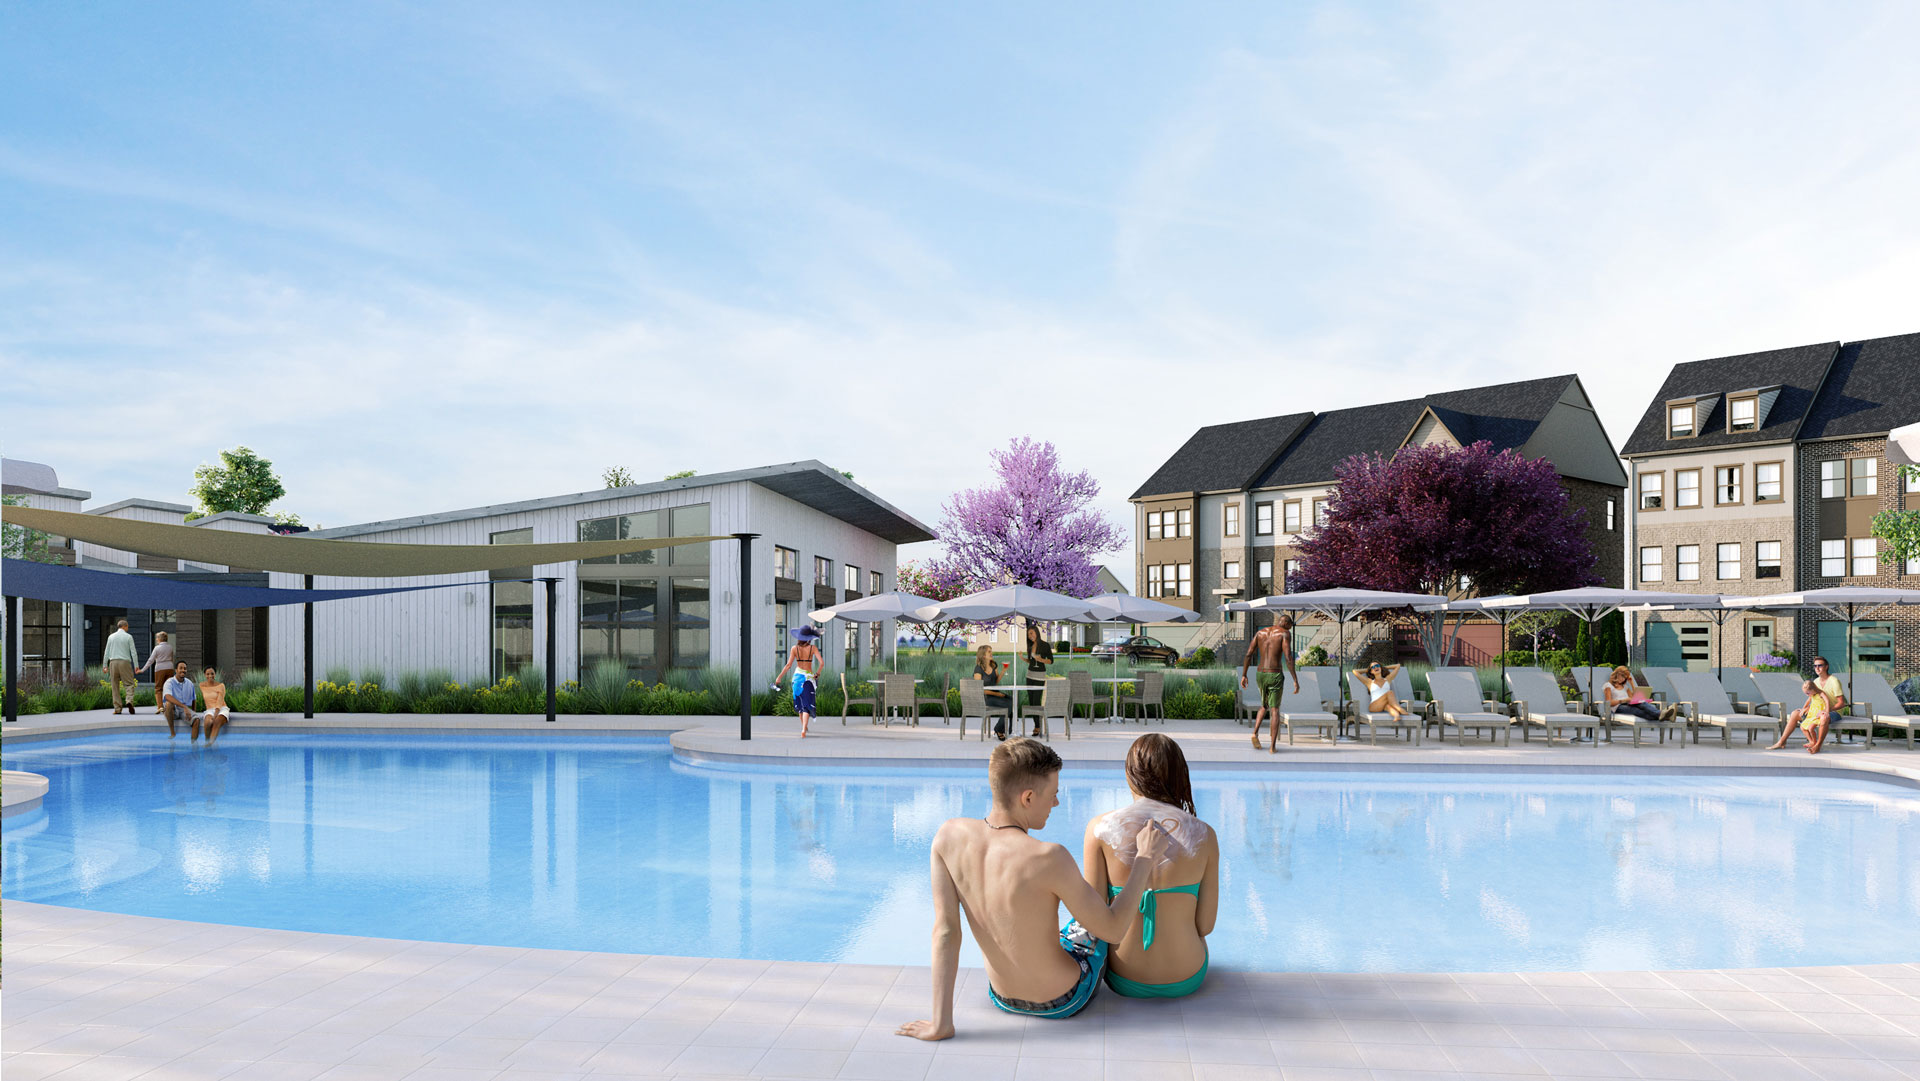 soak up the sun and relax by the pool at this new community of waterfront homes in maryland